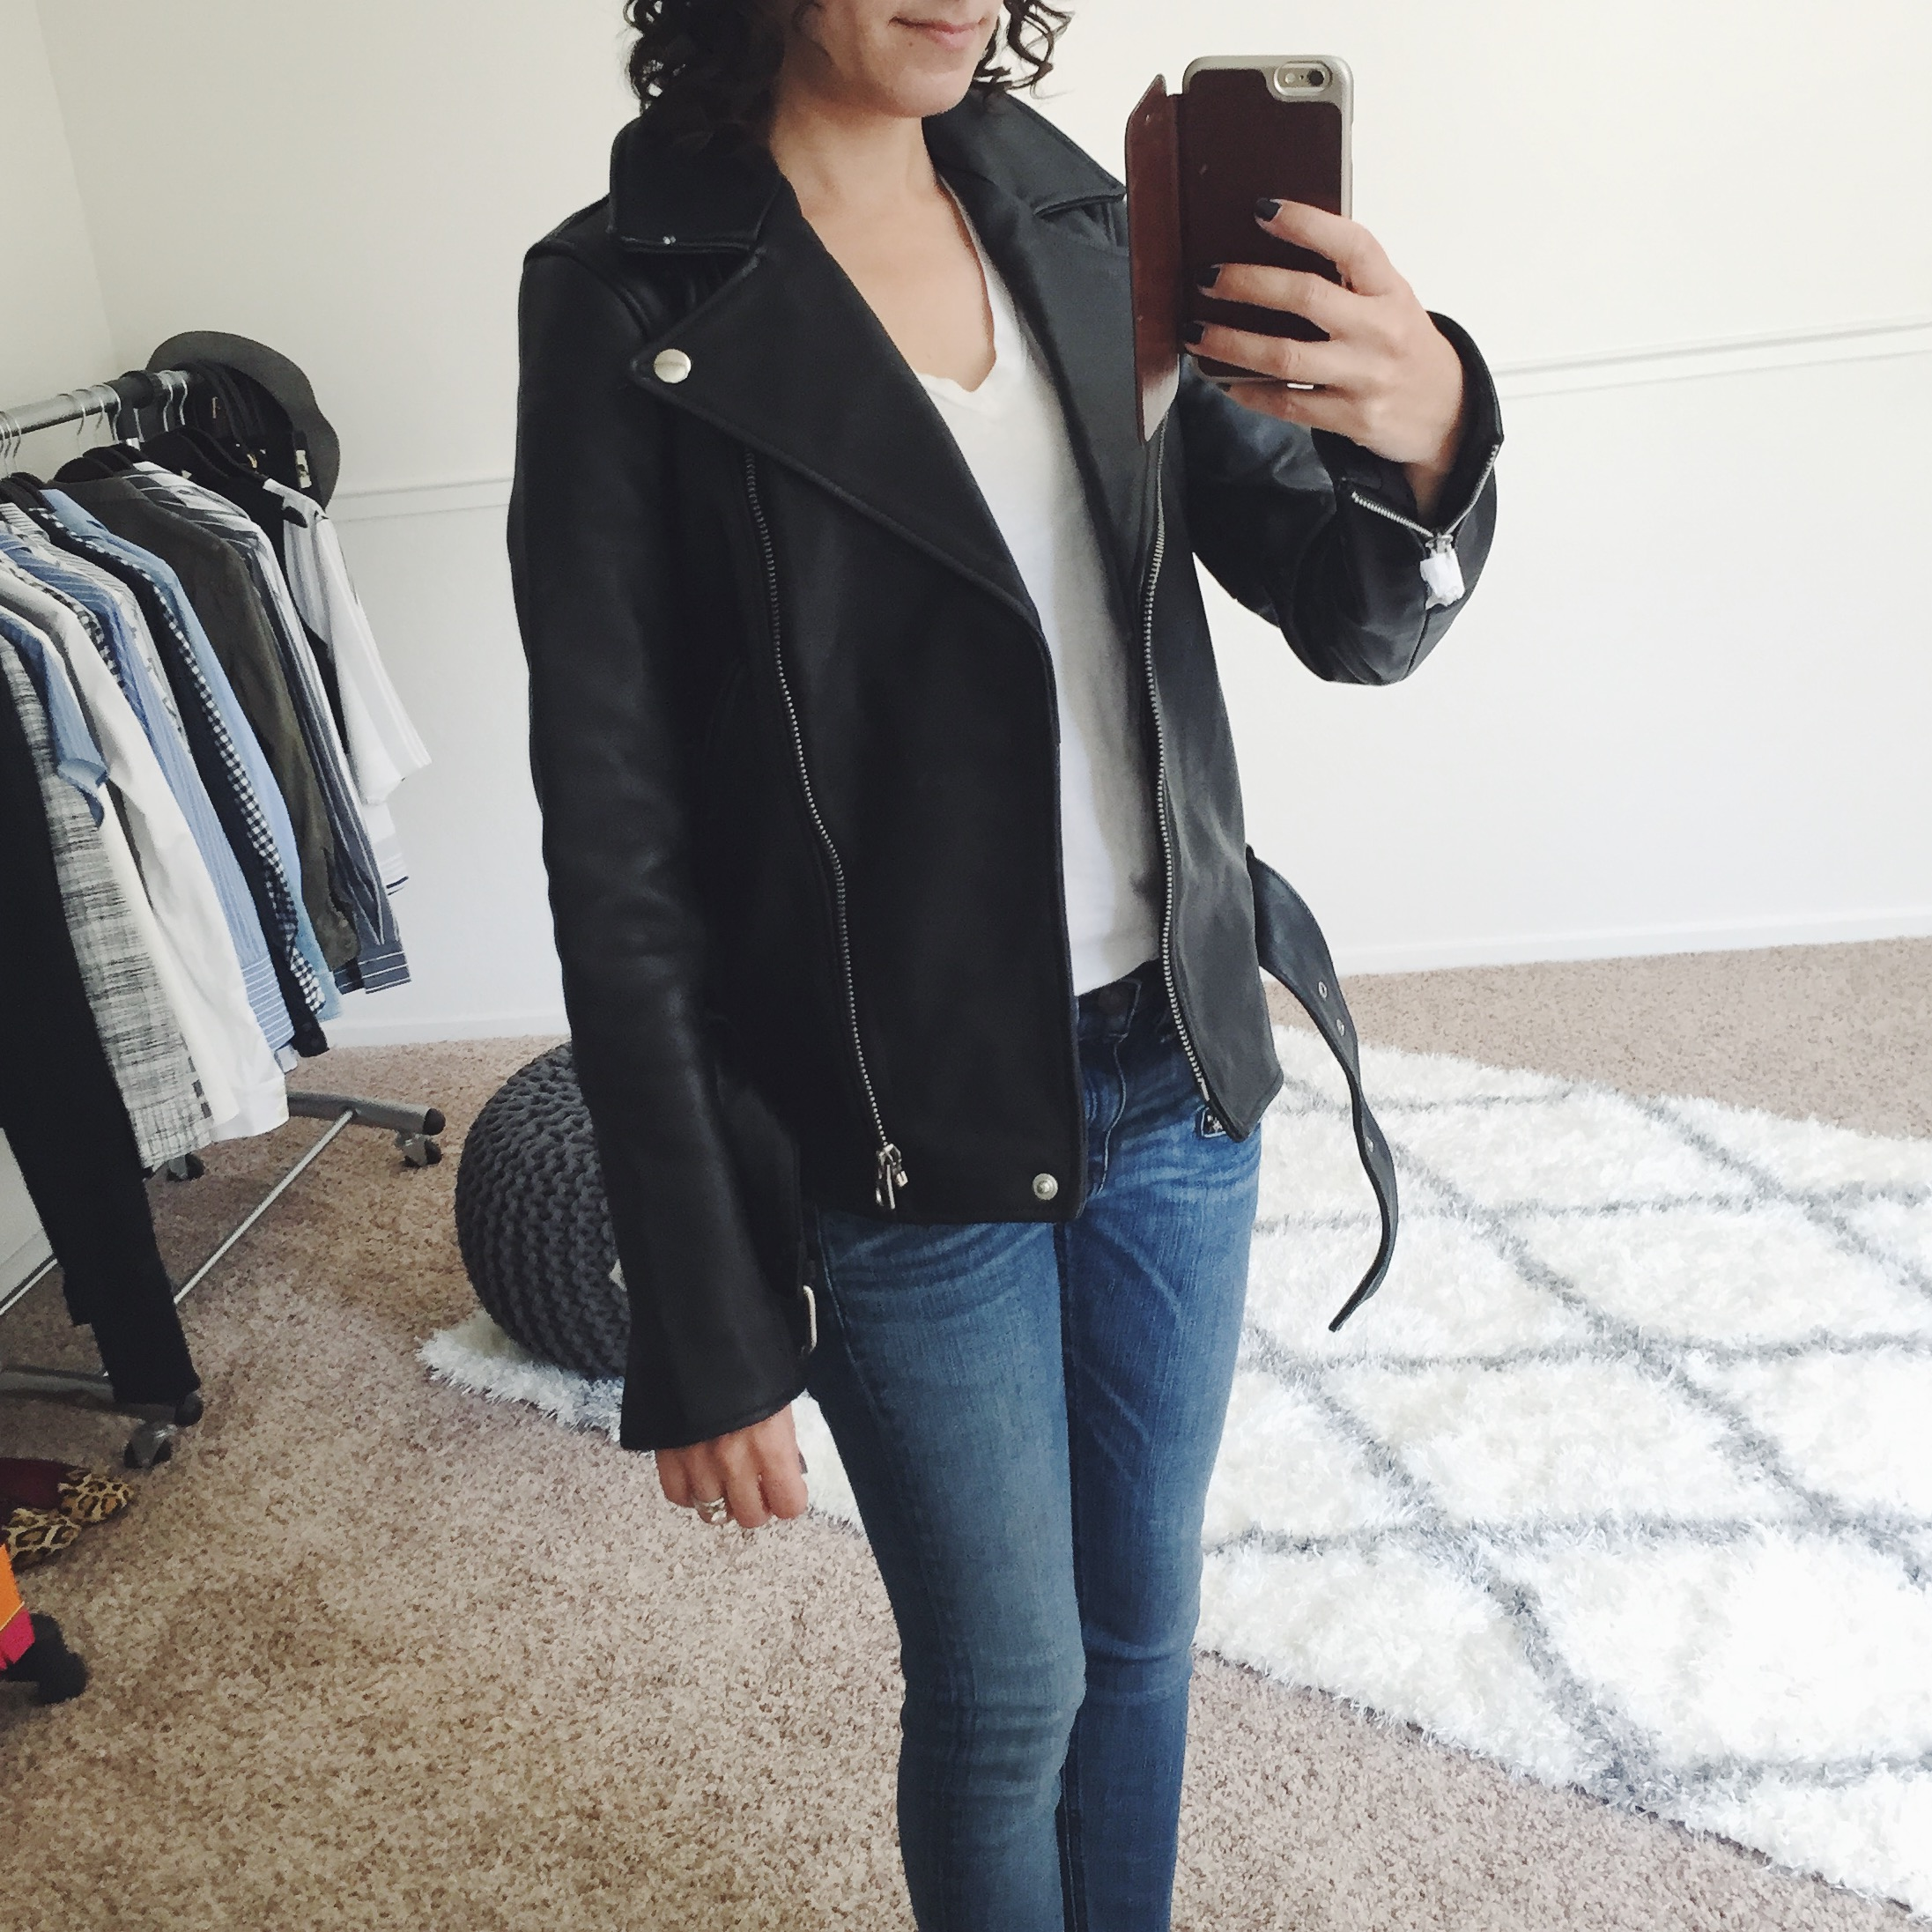 Fit Review Friday – Madewell Leather & Everlane Tee